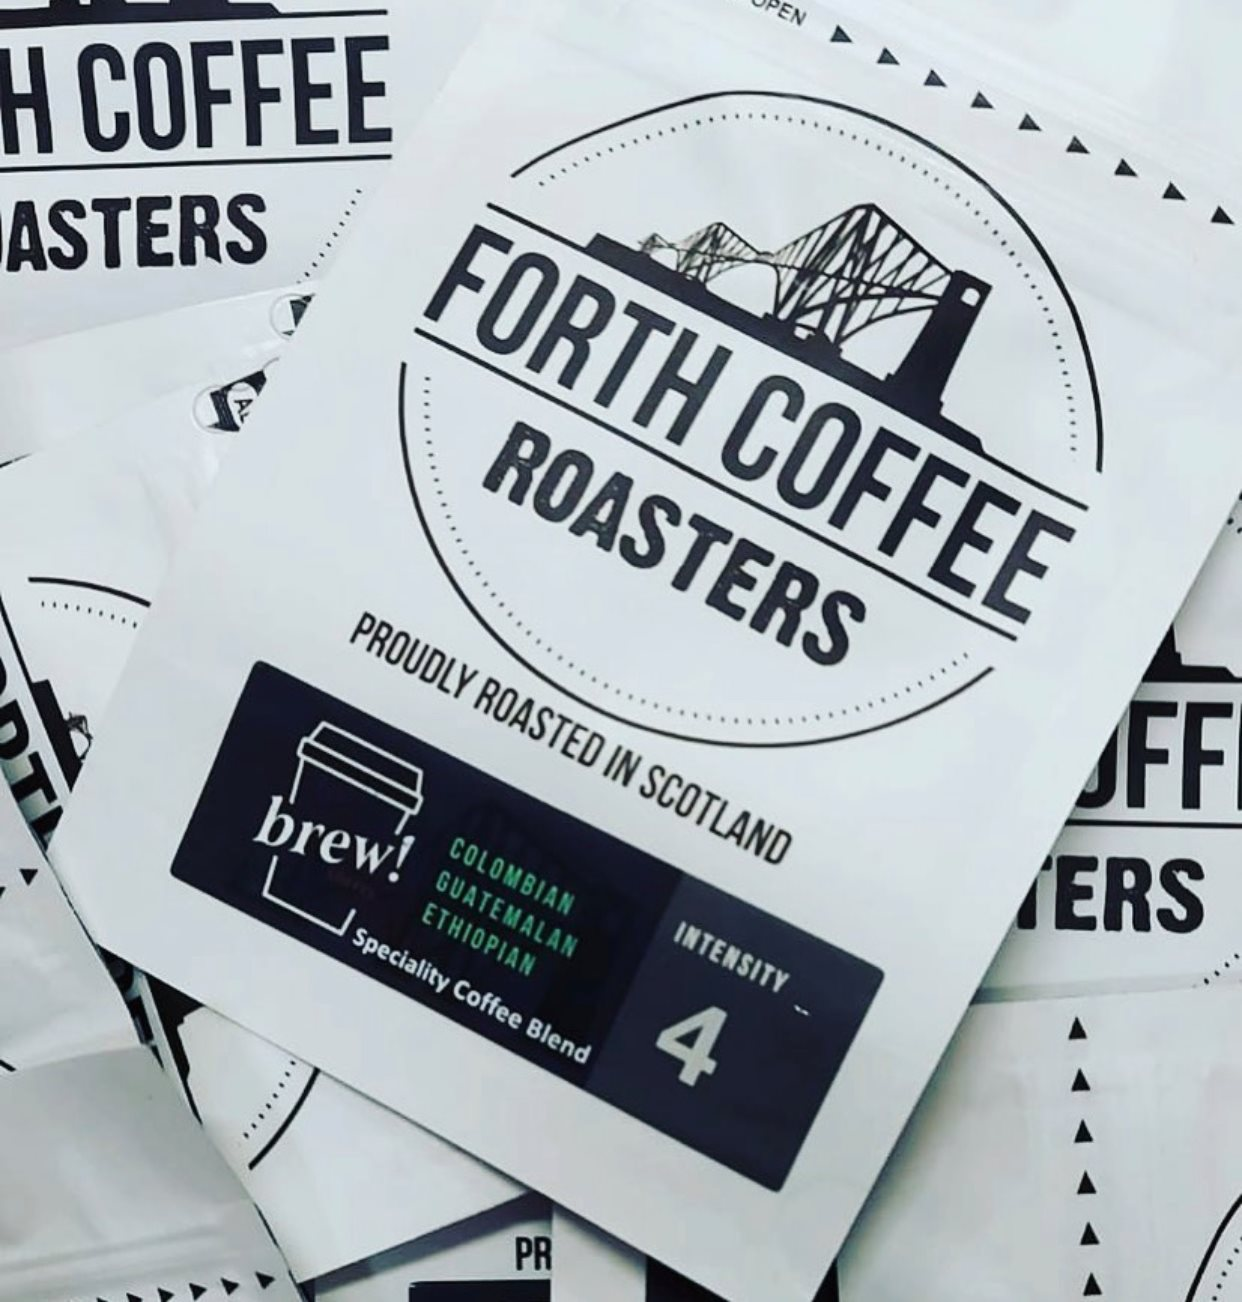 Brew! blend by Forth Coffee